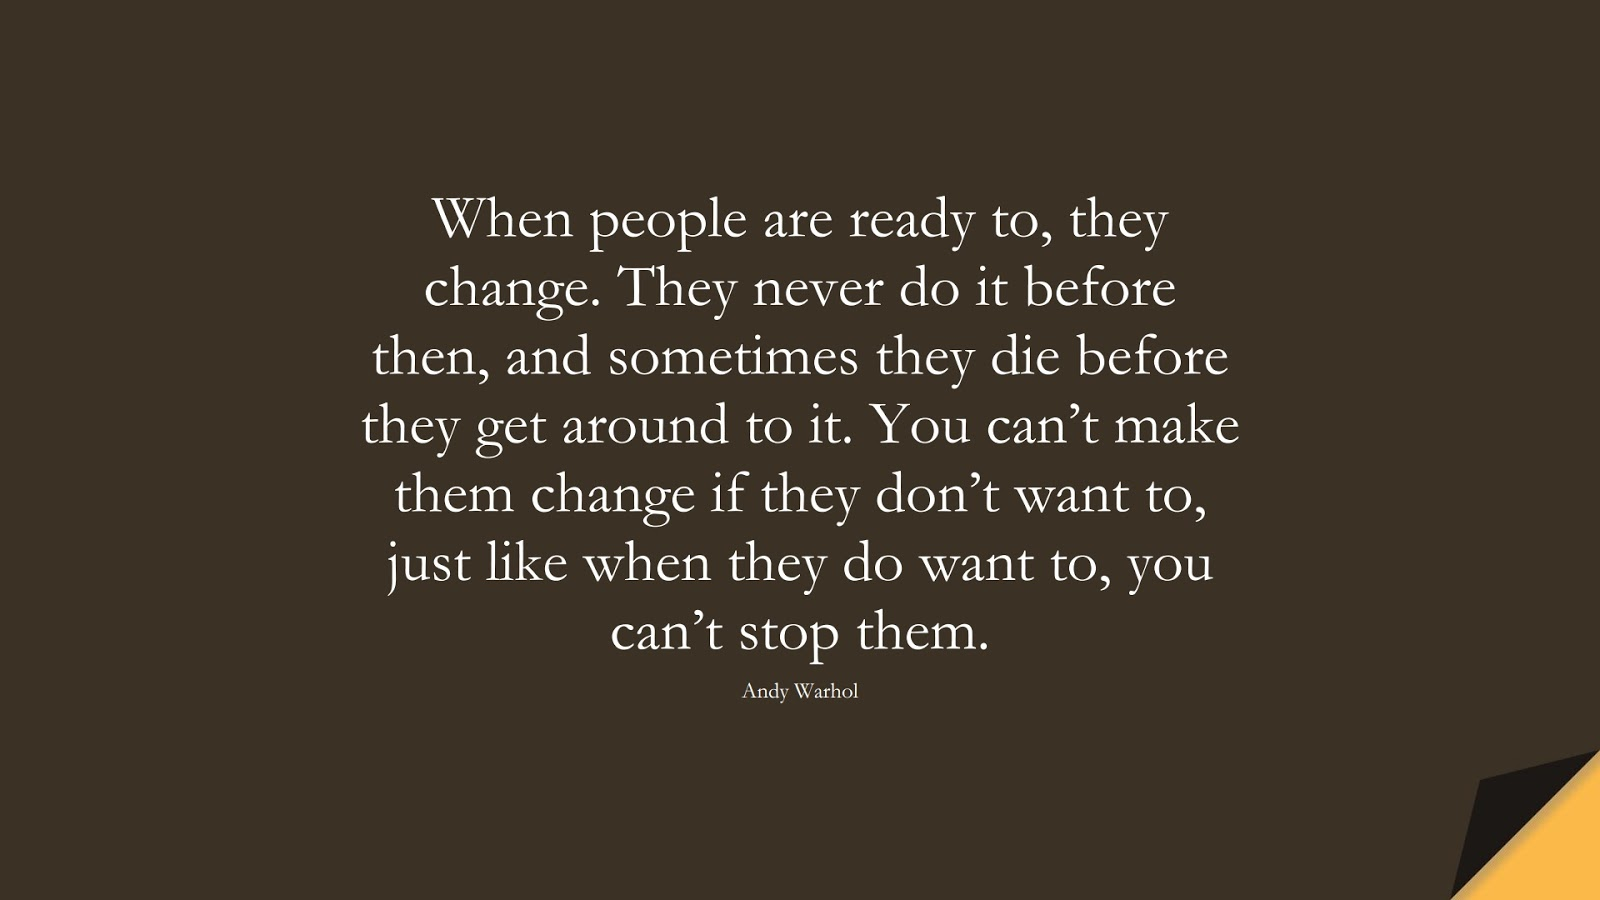 When people are ready to, they change. They never do it before then, and sometimes they die before they get around to it. You can't make them change if they don't want to, just like when they do want to, you can't stop them. (Andy Warhol);  #ChangeQuotes